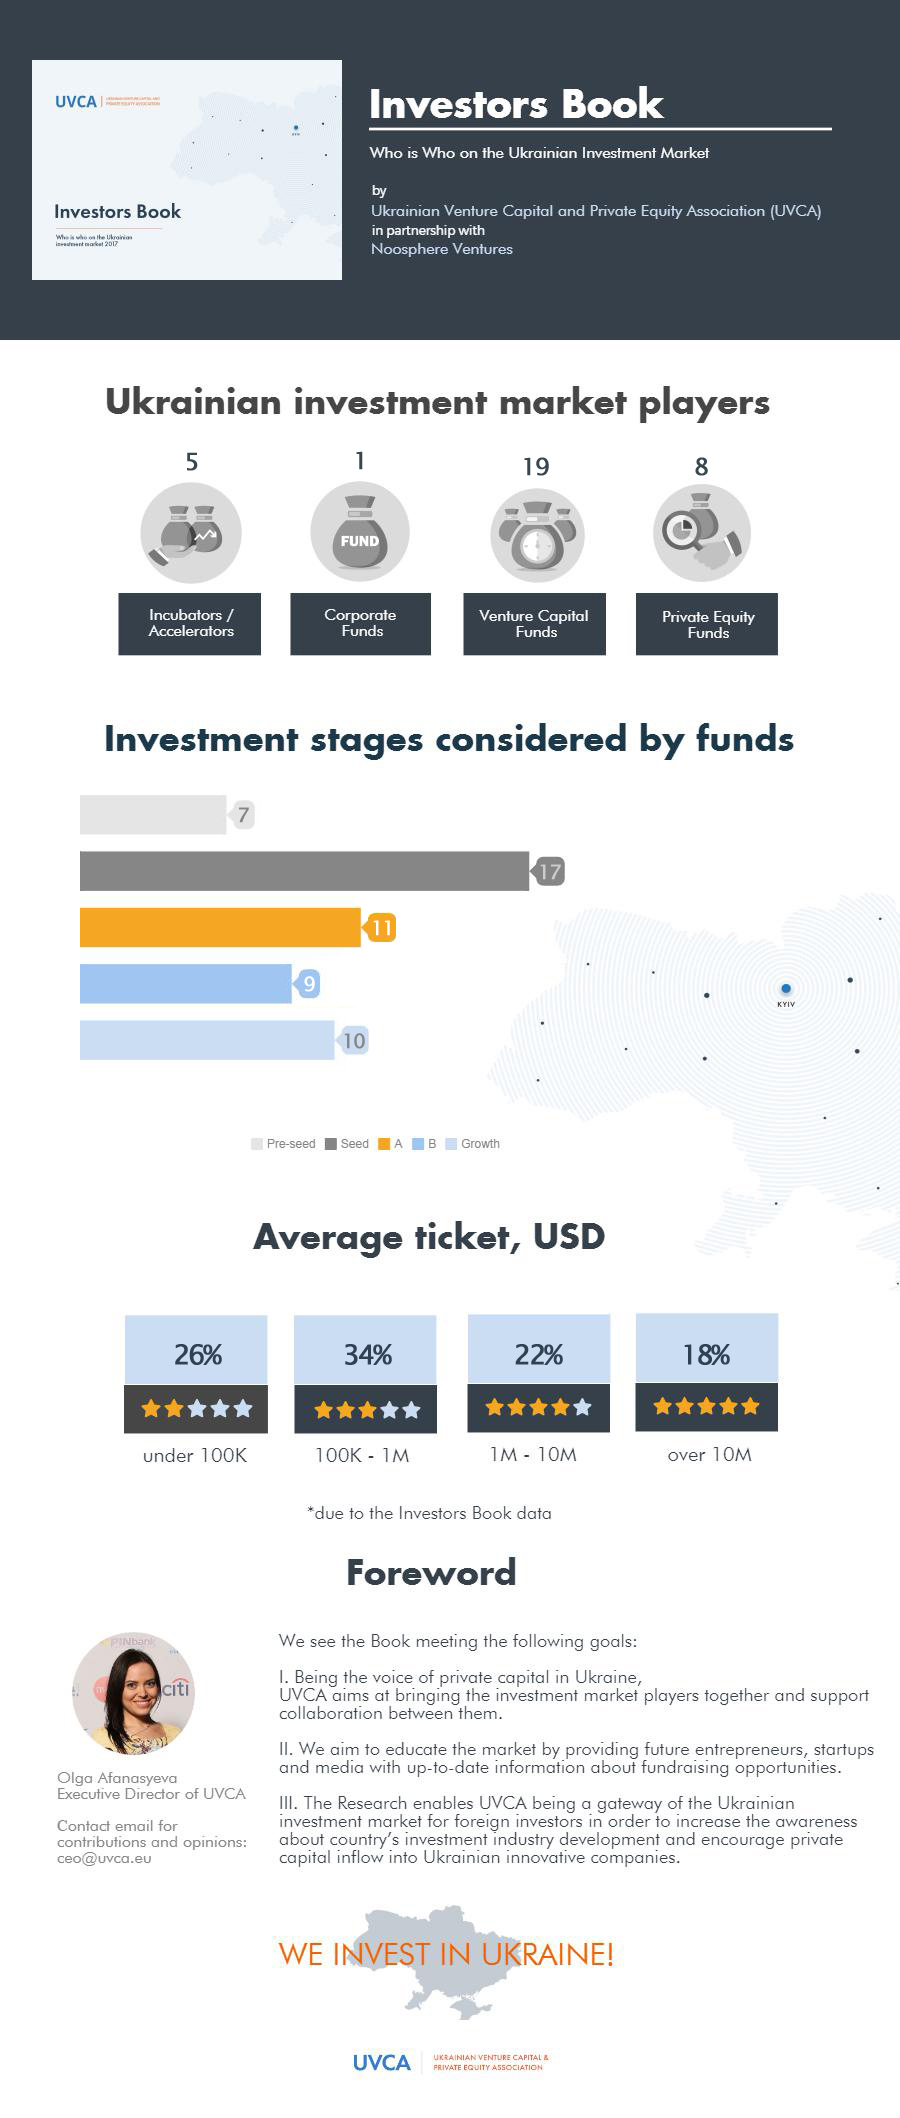 How to Find Investments in Ukraine